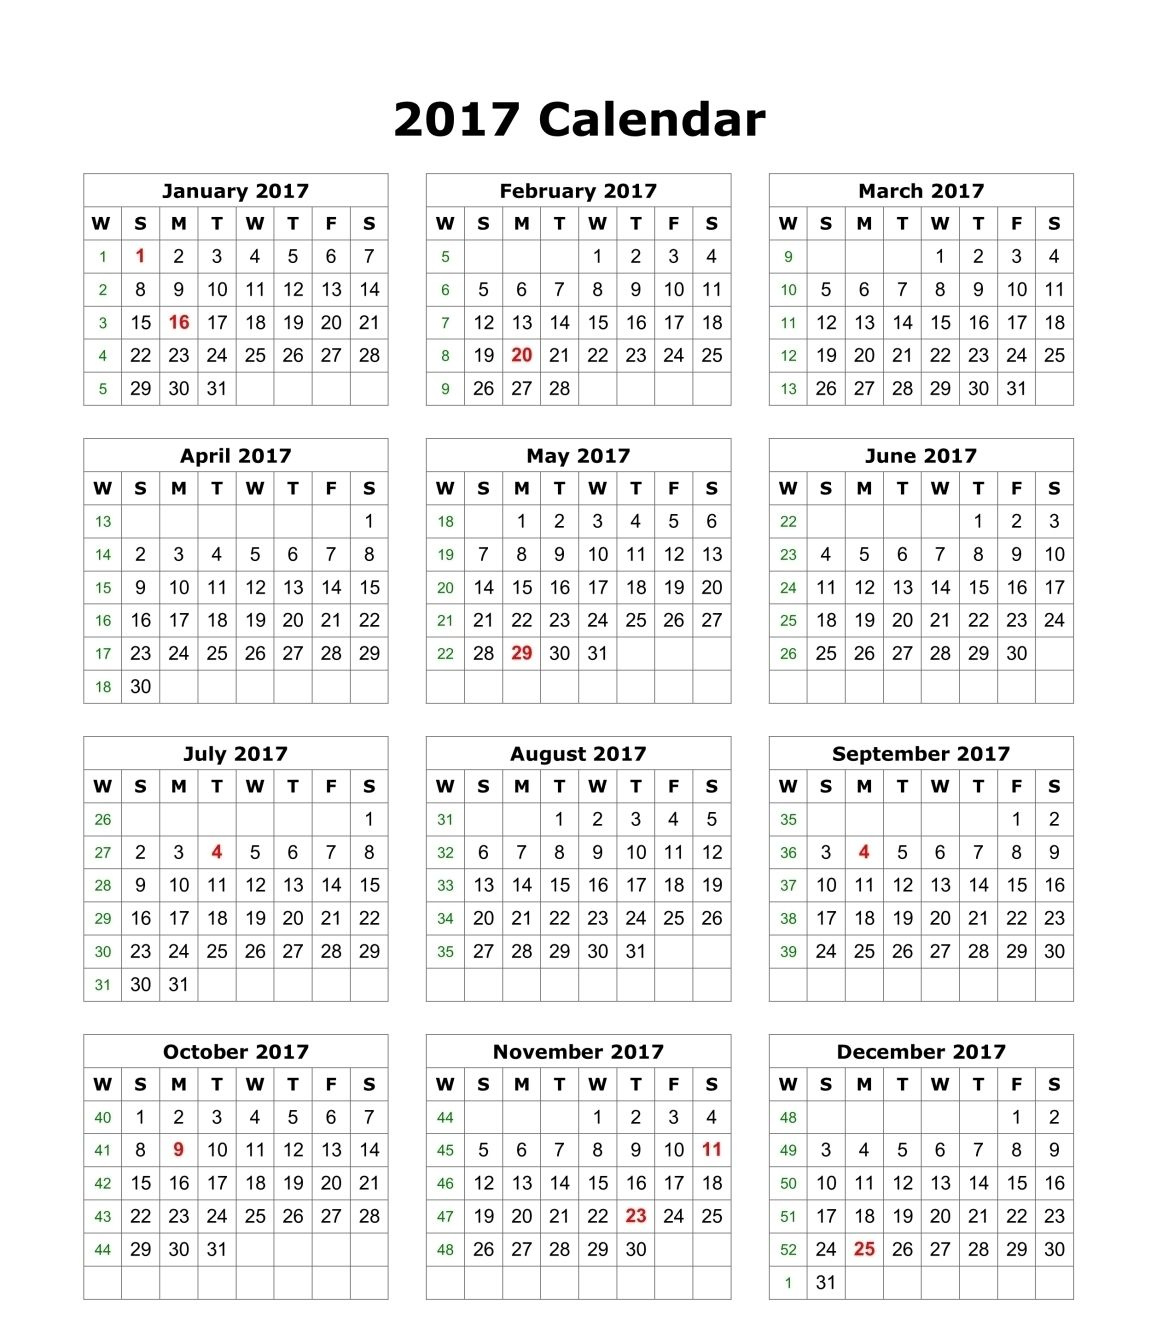 20+ 2021 Holidays South Africa - Free Download Printable December 2021 Calendar With Holidays South Africa